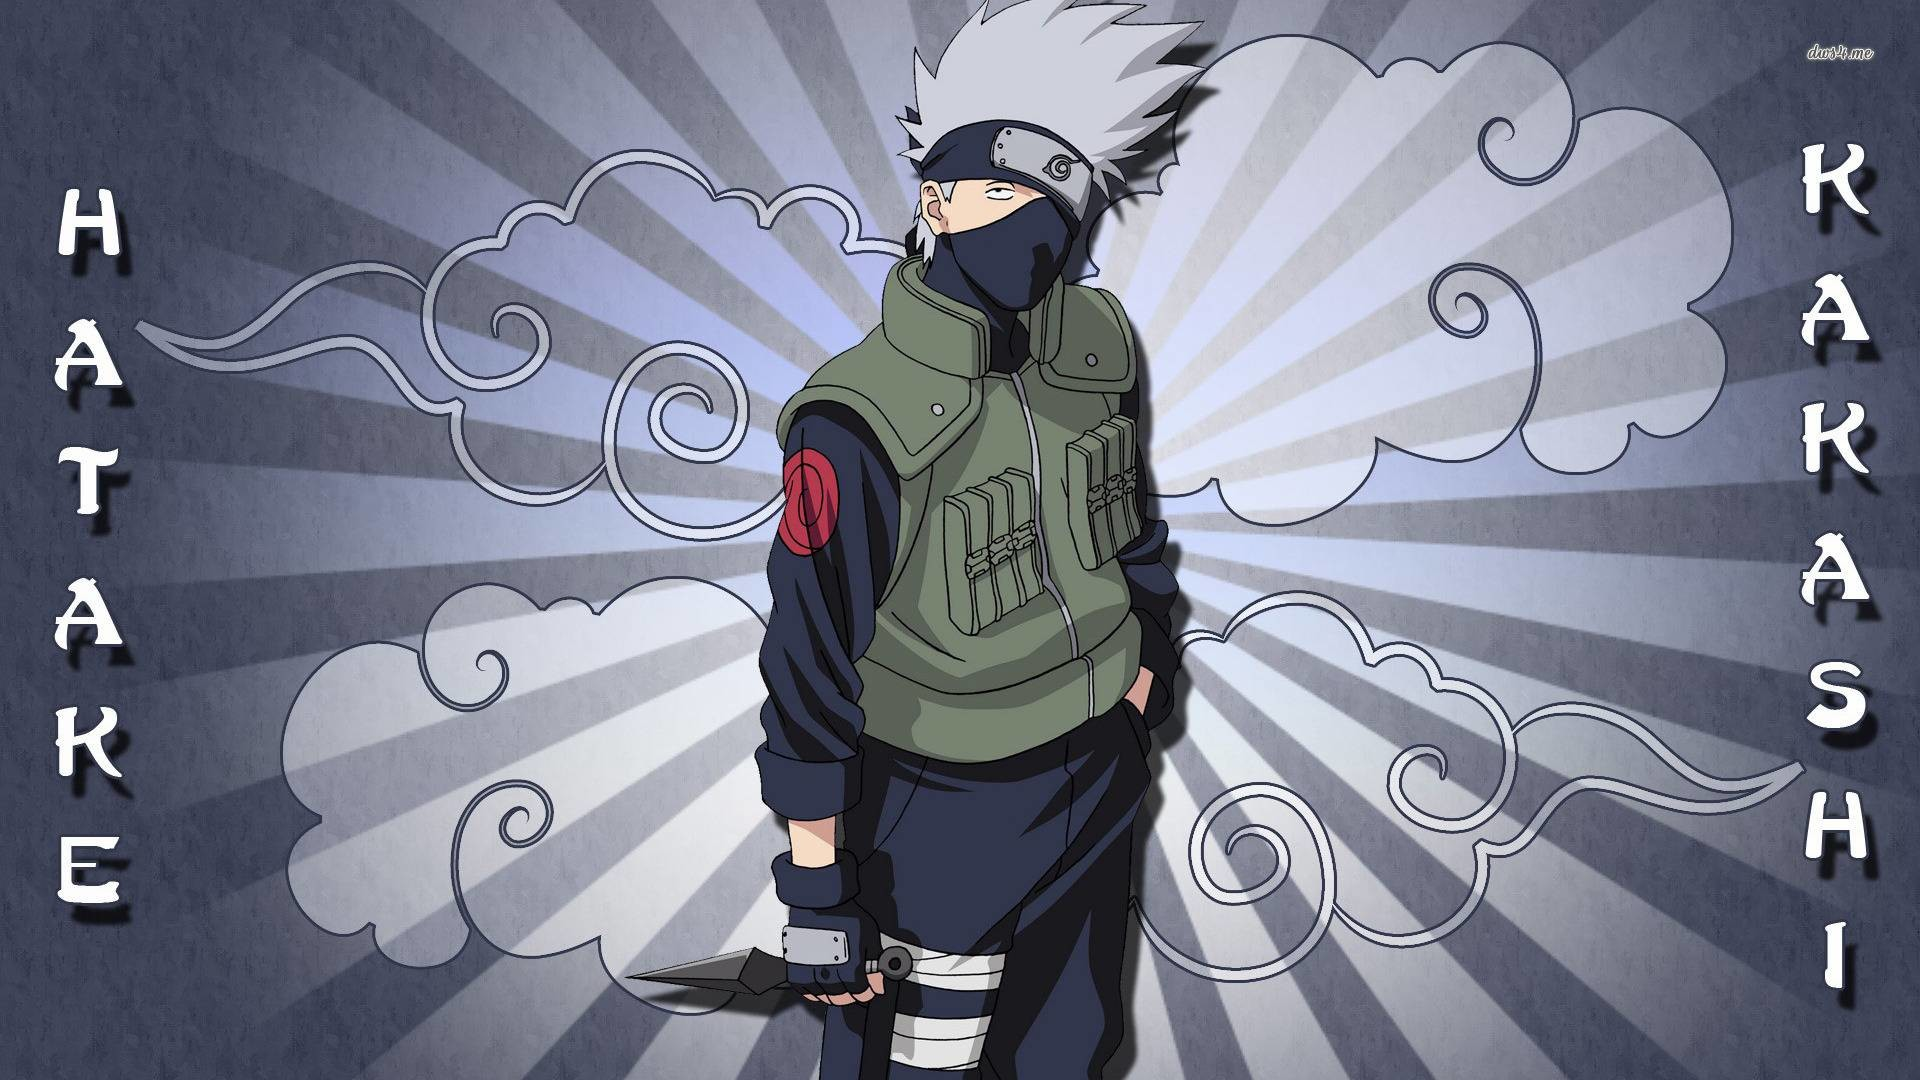 Res: 1920x1080, Naruto Kakashi Wallpapers For Android